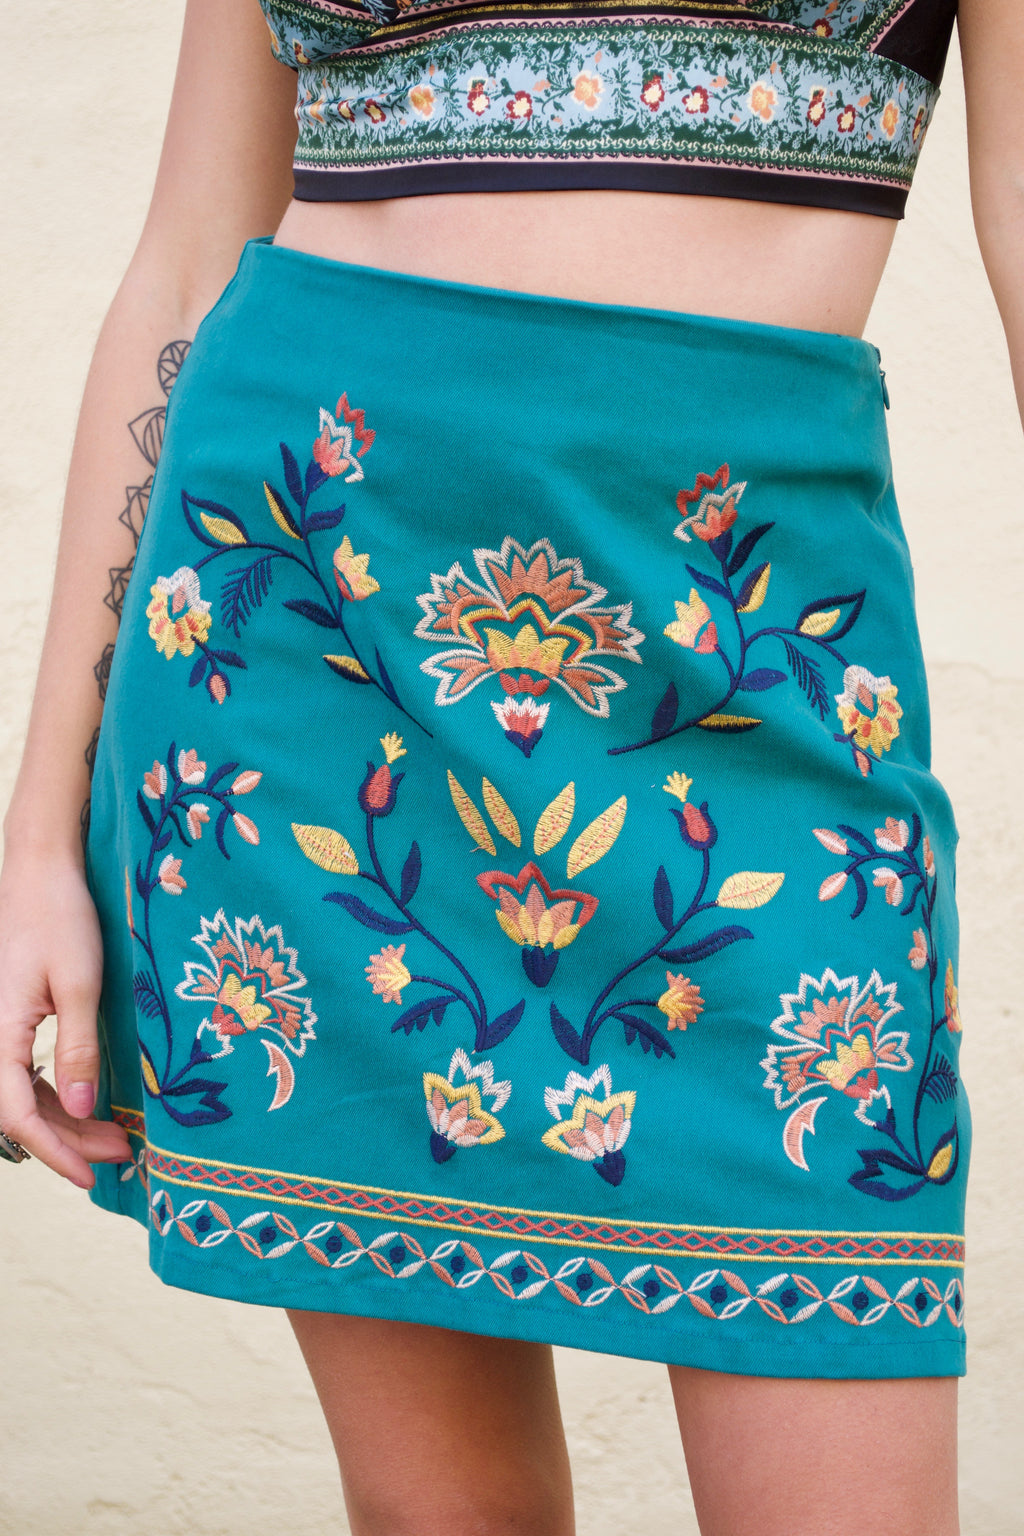 FT Teal Flower Skirt